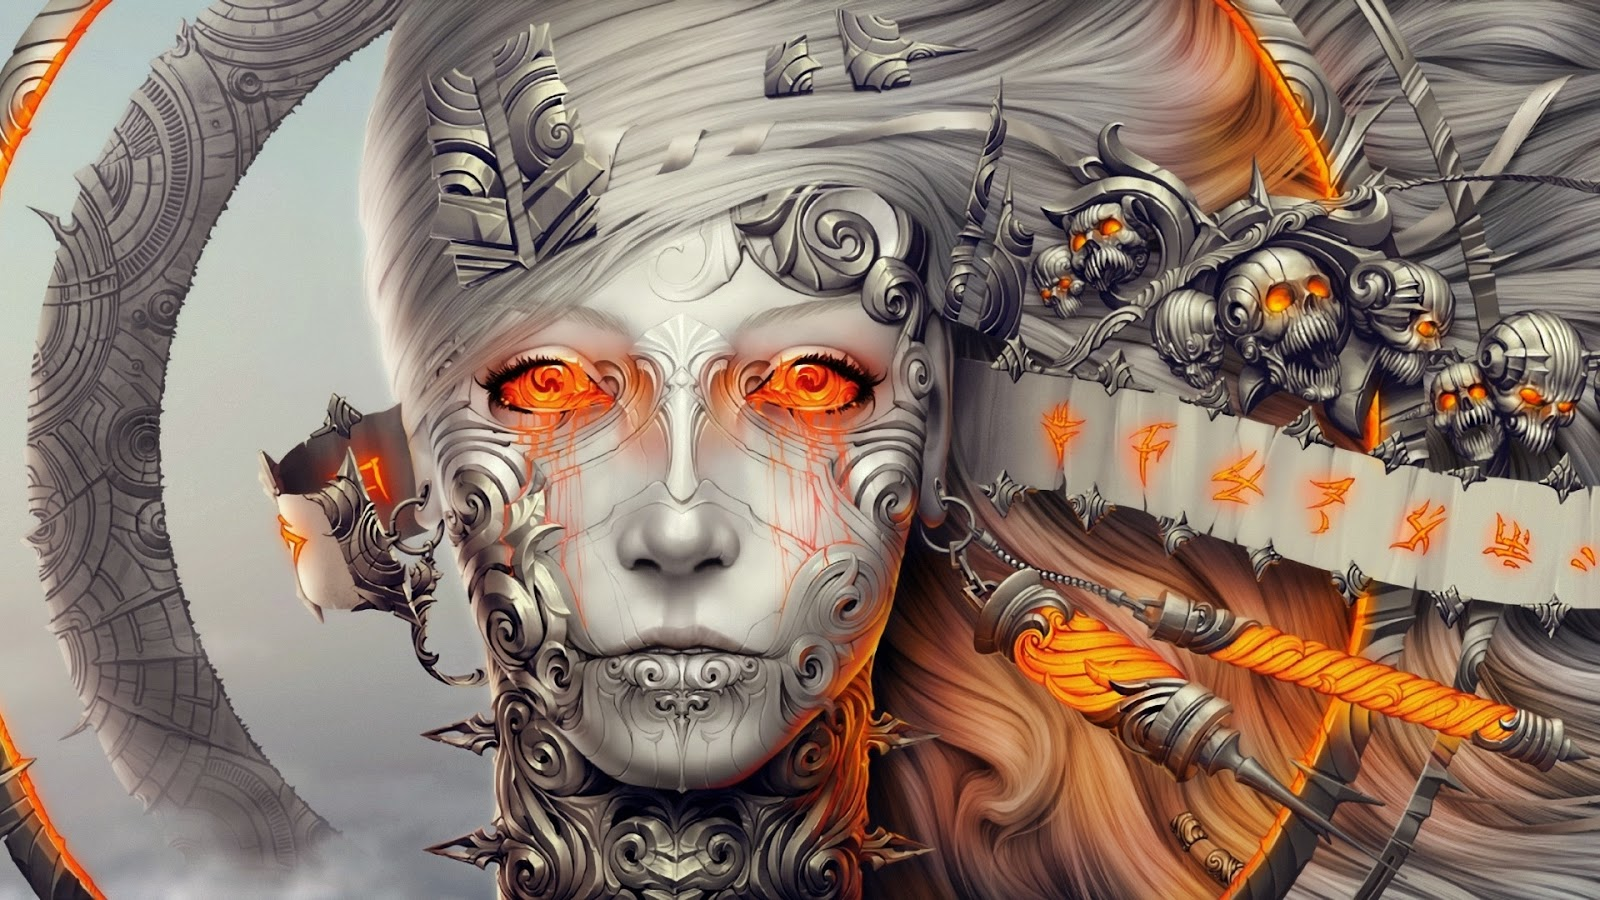 wallpiolt: 3d robot girl digital art hd wallpaper